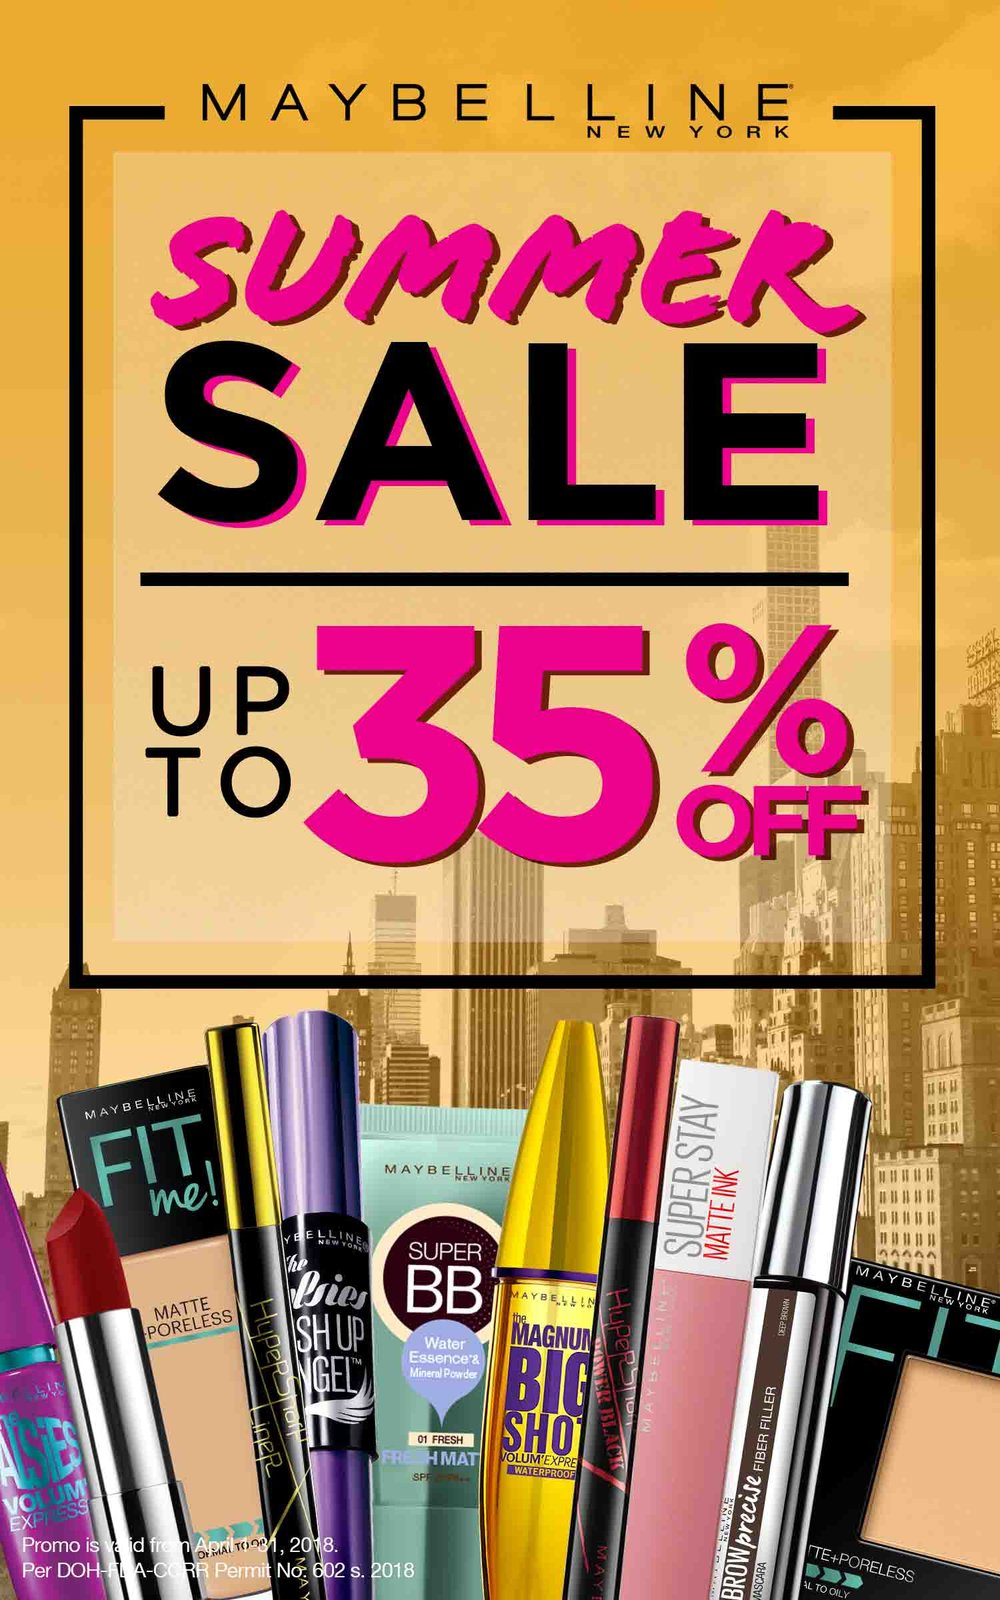 maybellinesale-upsizeph.jpeg